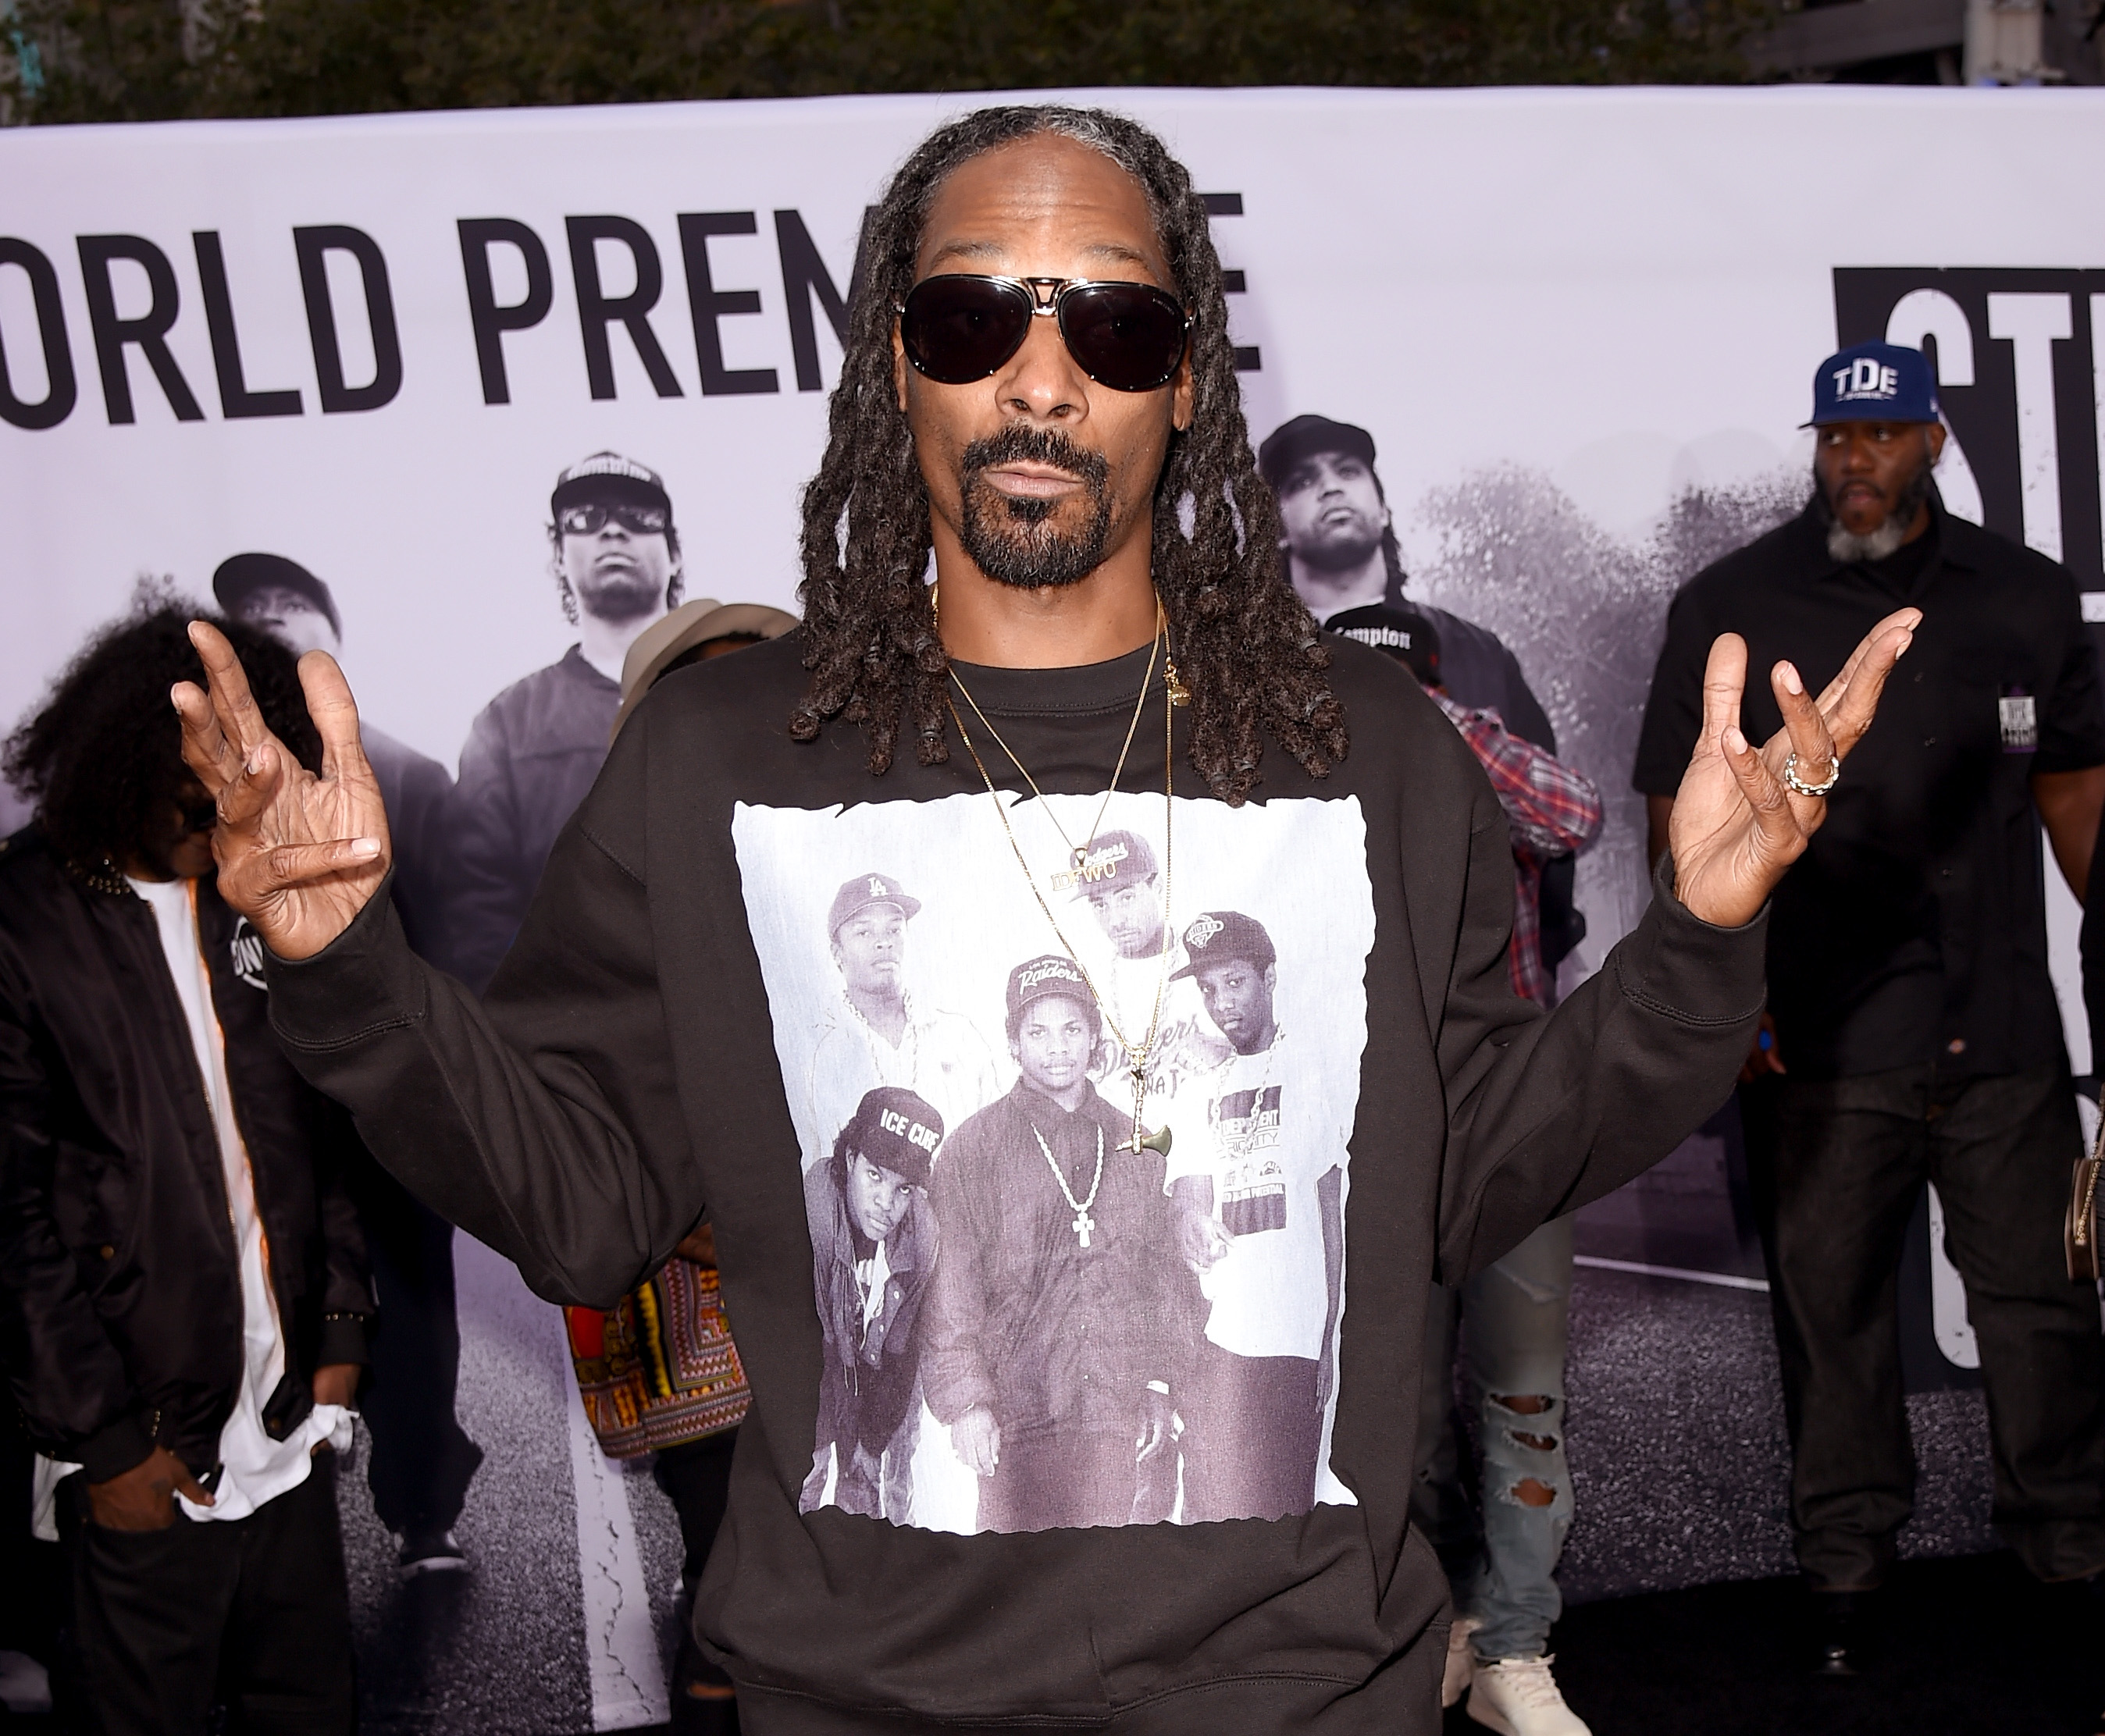 Woman Gets Random Voicemail From Snoop Dogg, Things Quickly Turn Heated GettyImages 483633218